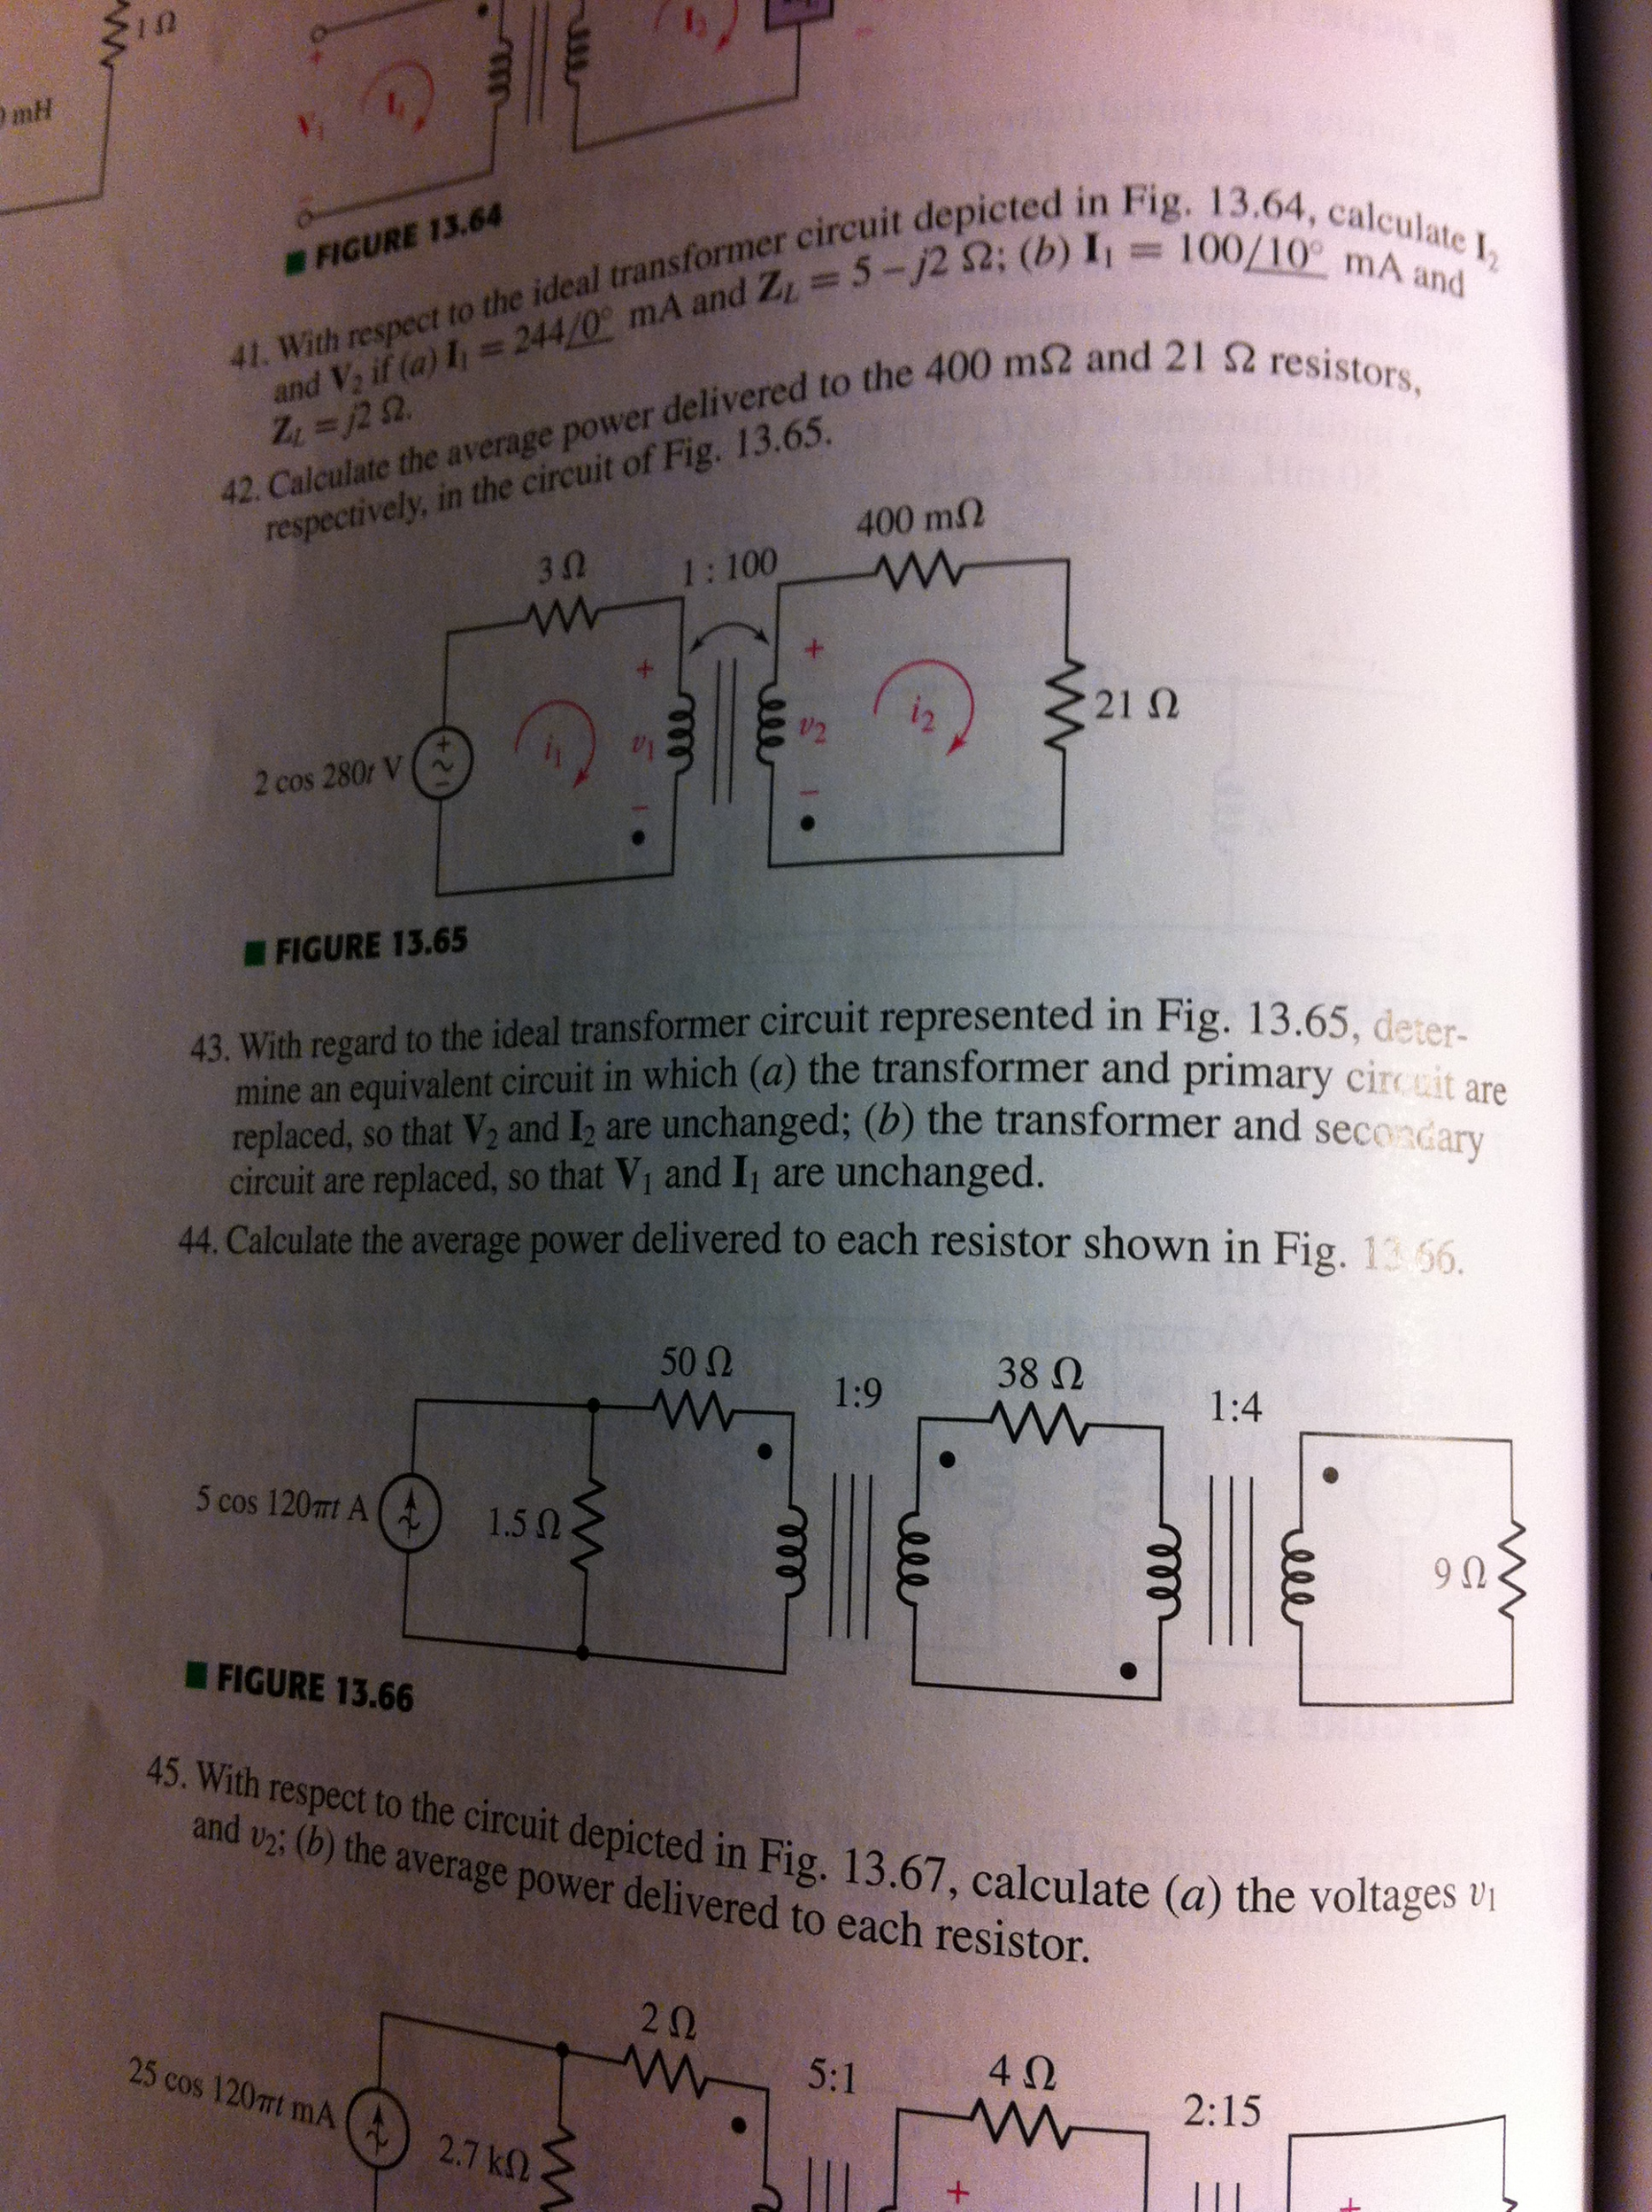 With respect to the ideal transformer circuit depi